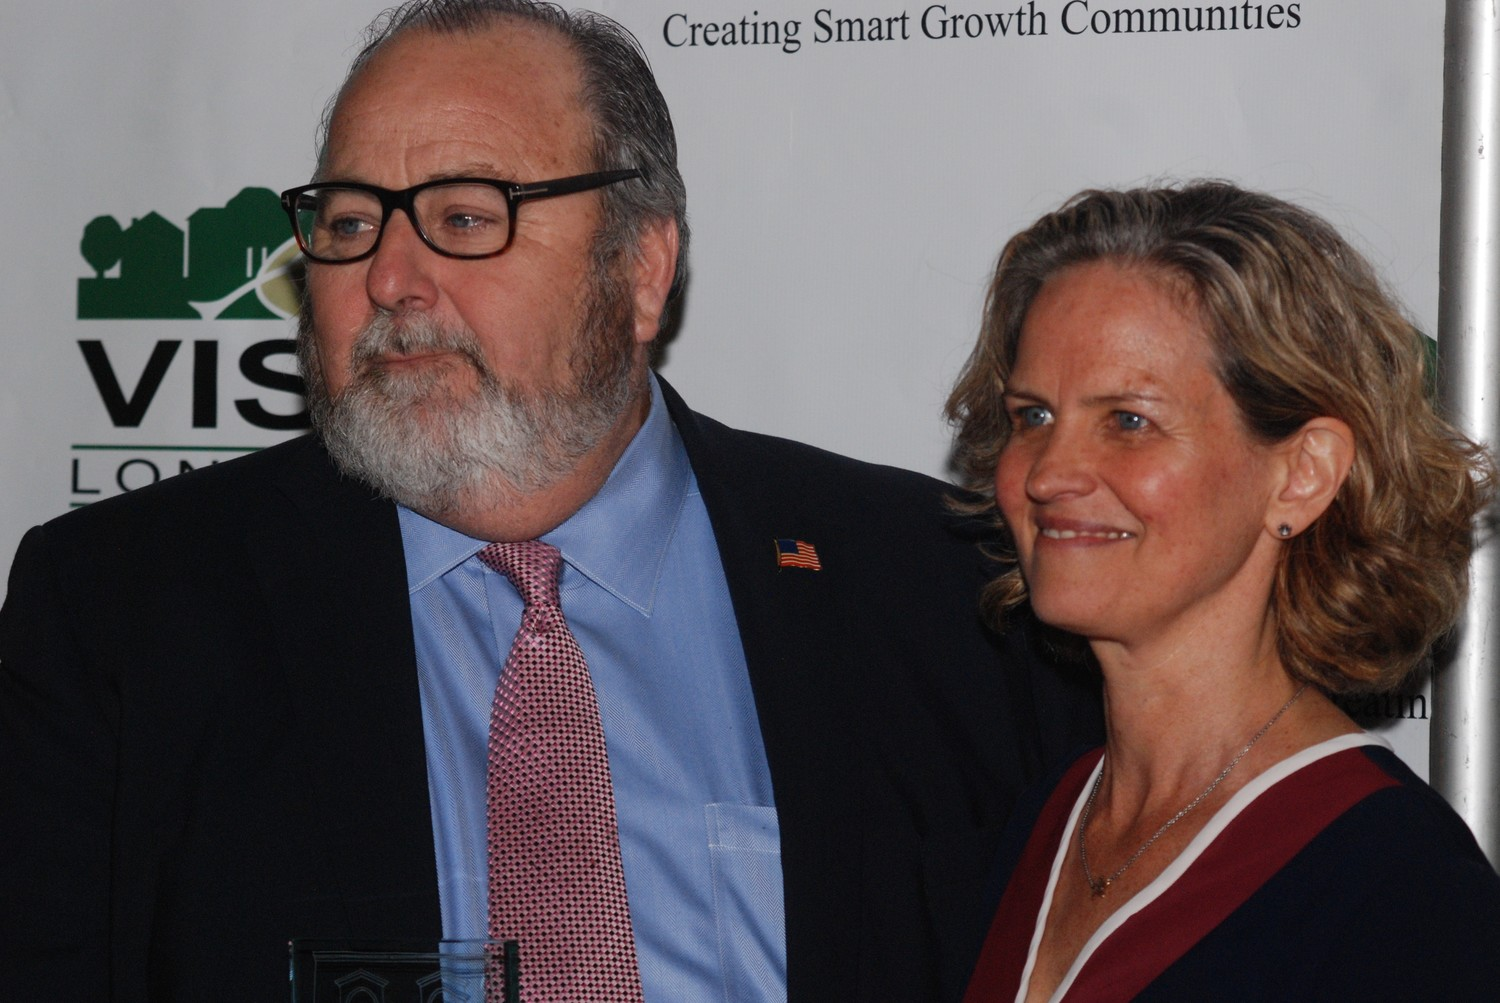 Rockville Centre Mayor Francis X. Murray and Nassau County Executive Laura Curran attended Vision Long Island's 17th Smart Growth Awards on June 8 at the Crest Hollow Country Club in Woodbury.